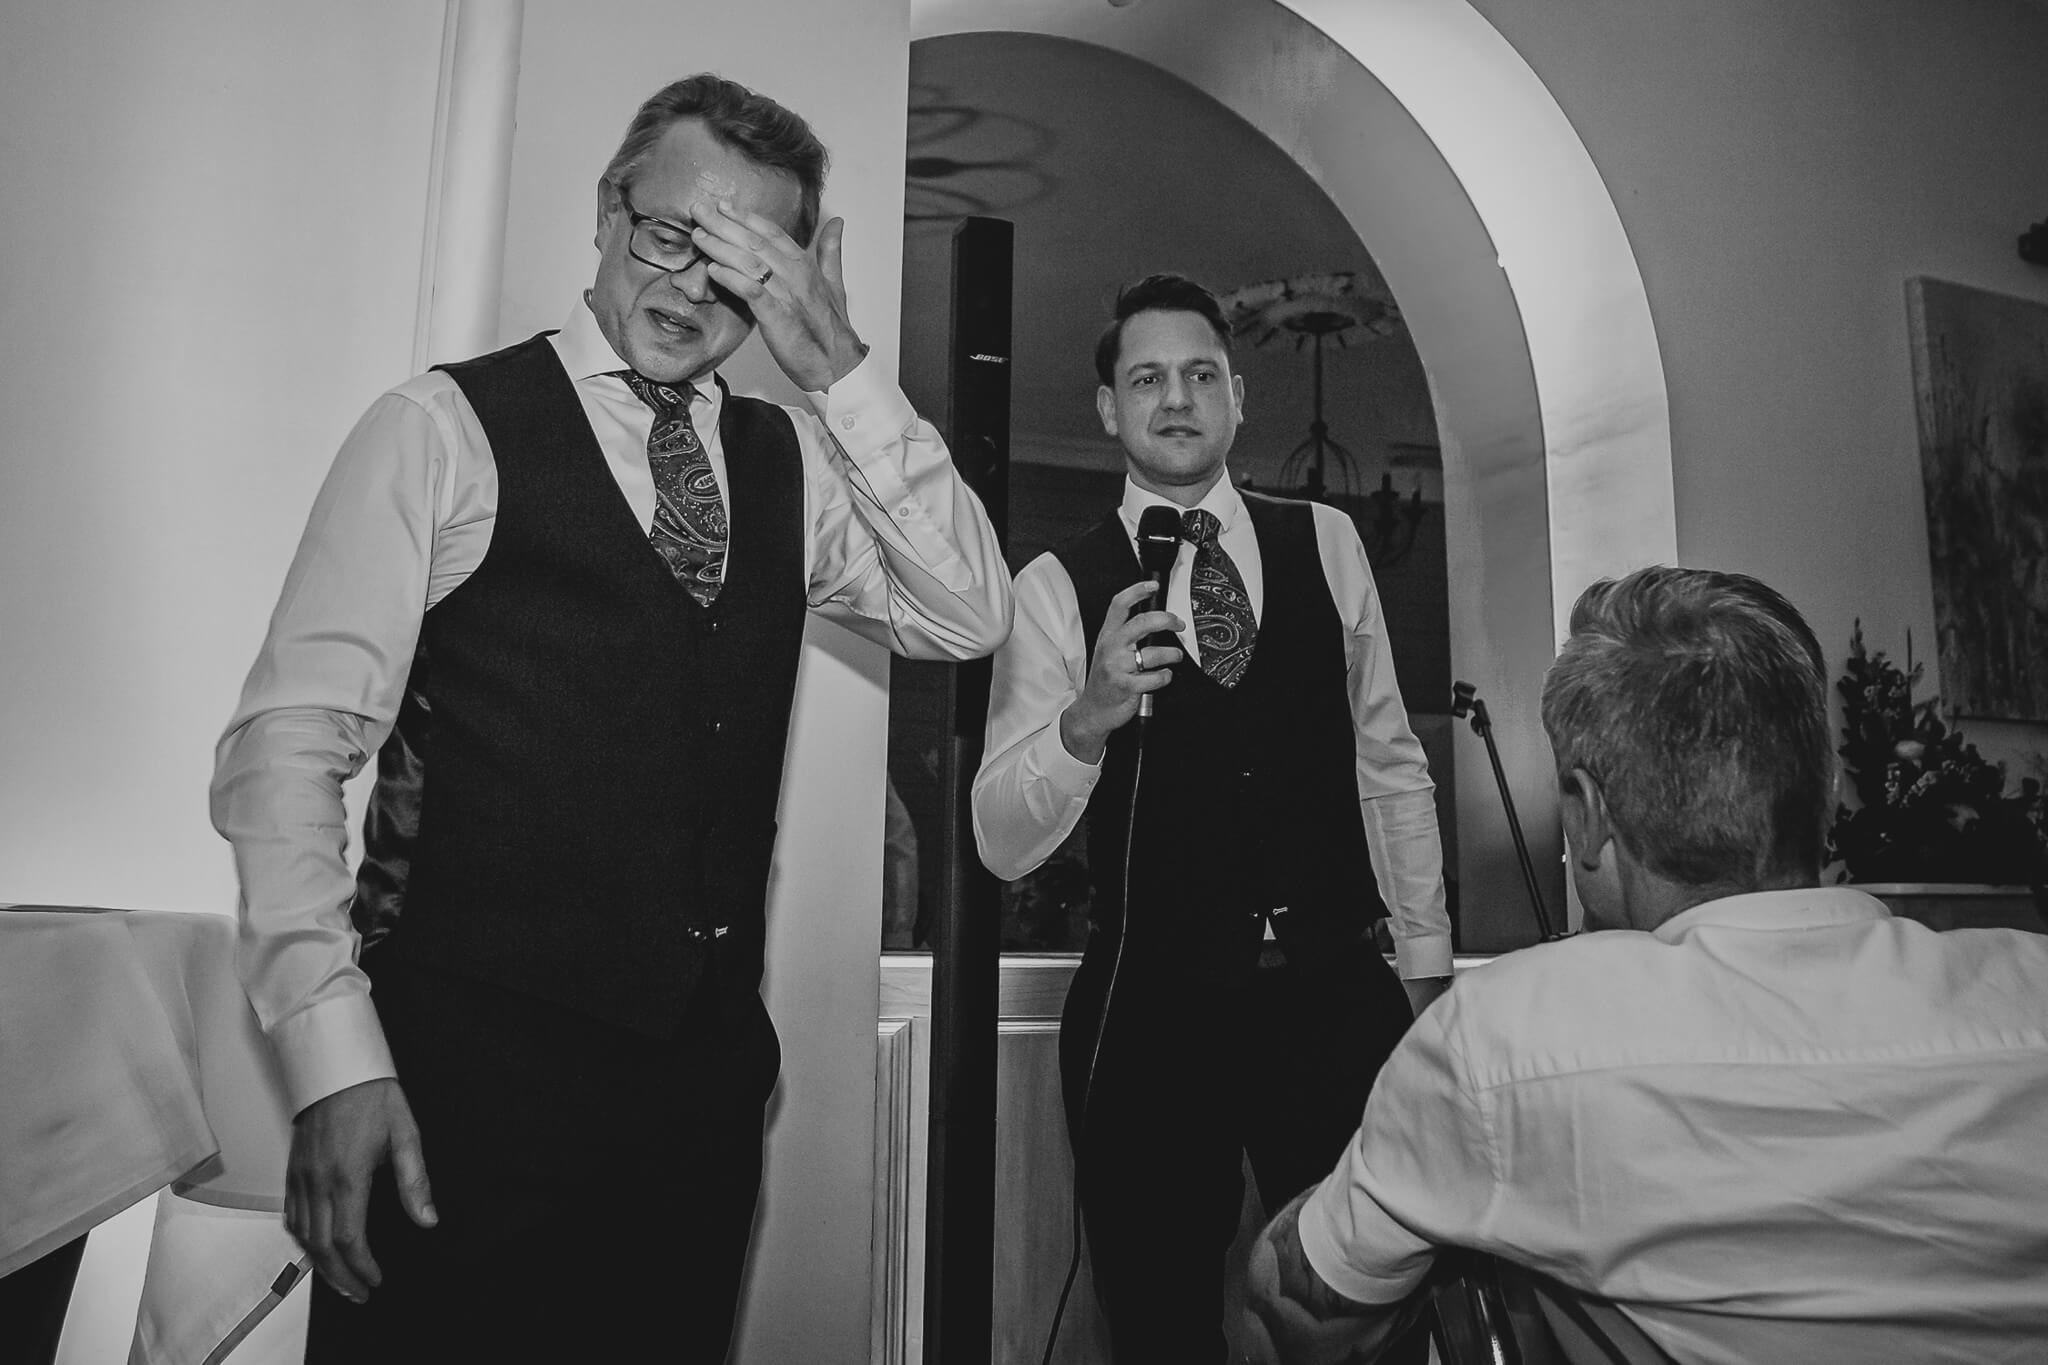 groom-bestman-wedding-speeches-photograph-stanbury